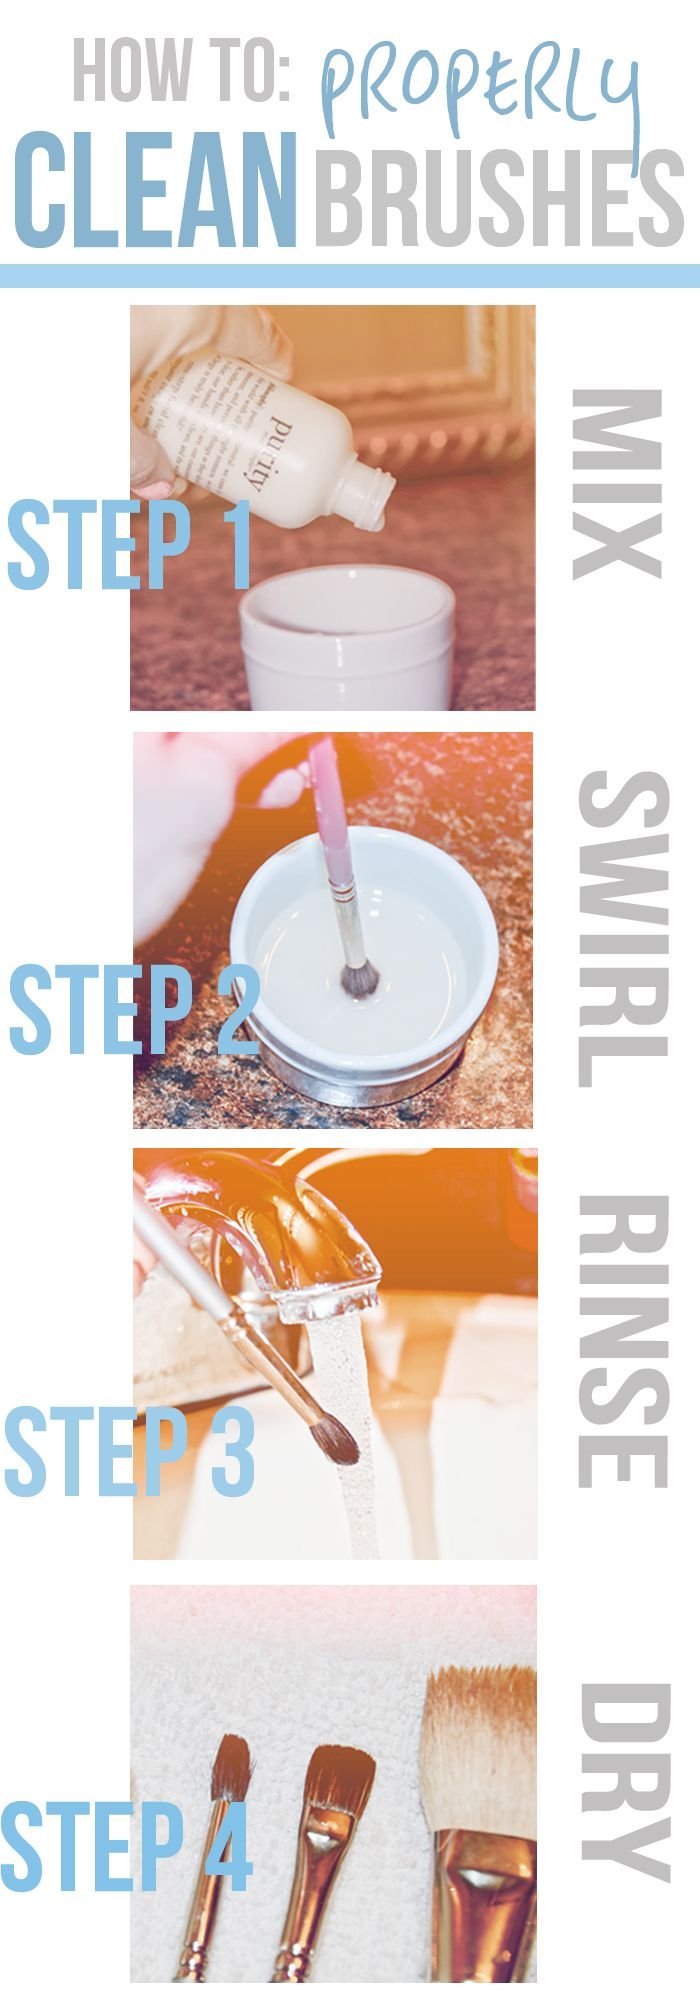 Step by step details and some really helpful do's and don'ts for taking care of your brushes.